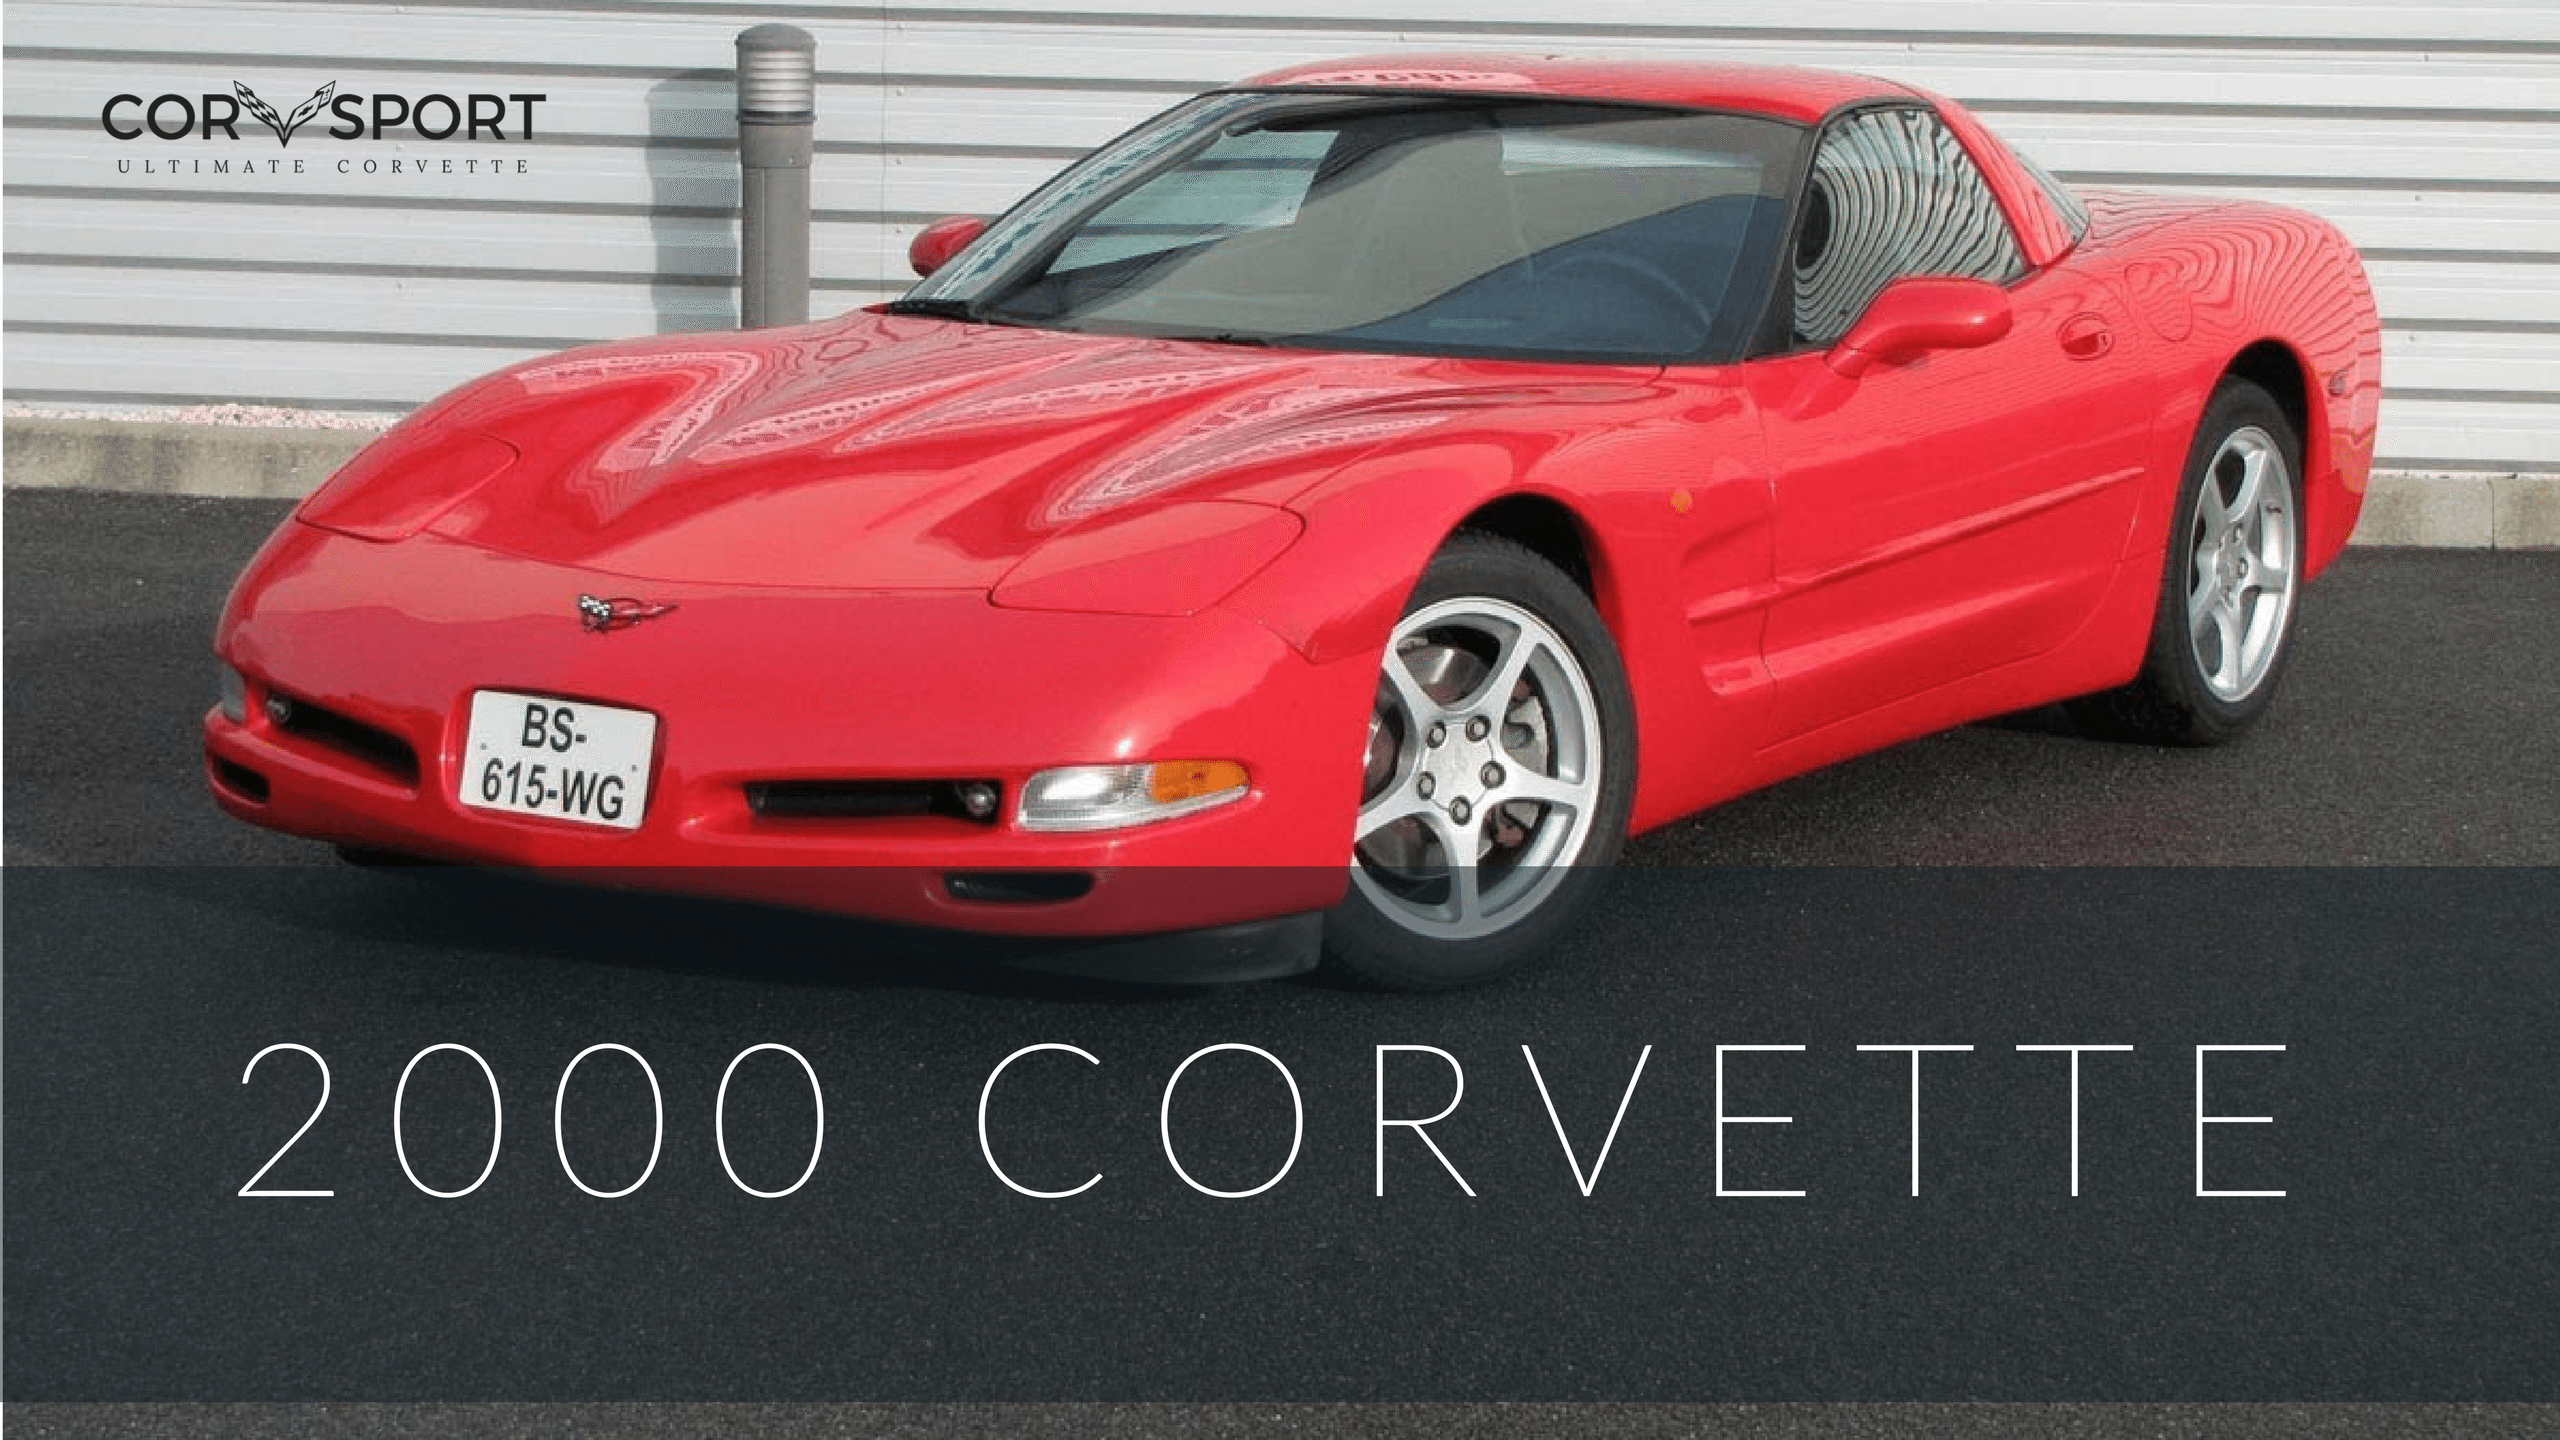 2000 C5 Corvette Ultimate Guide Overview Specs Vin Info 87 Cold Start Injector Wiring Diagram Article